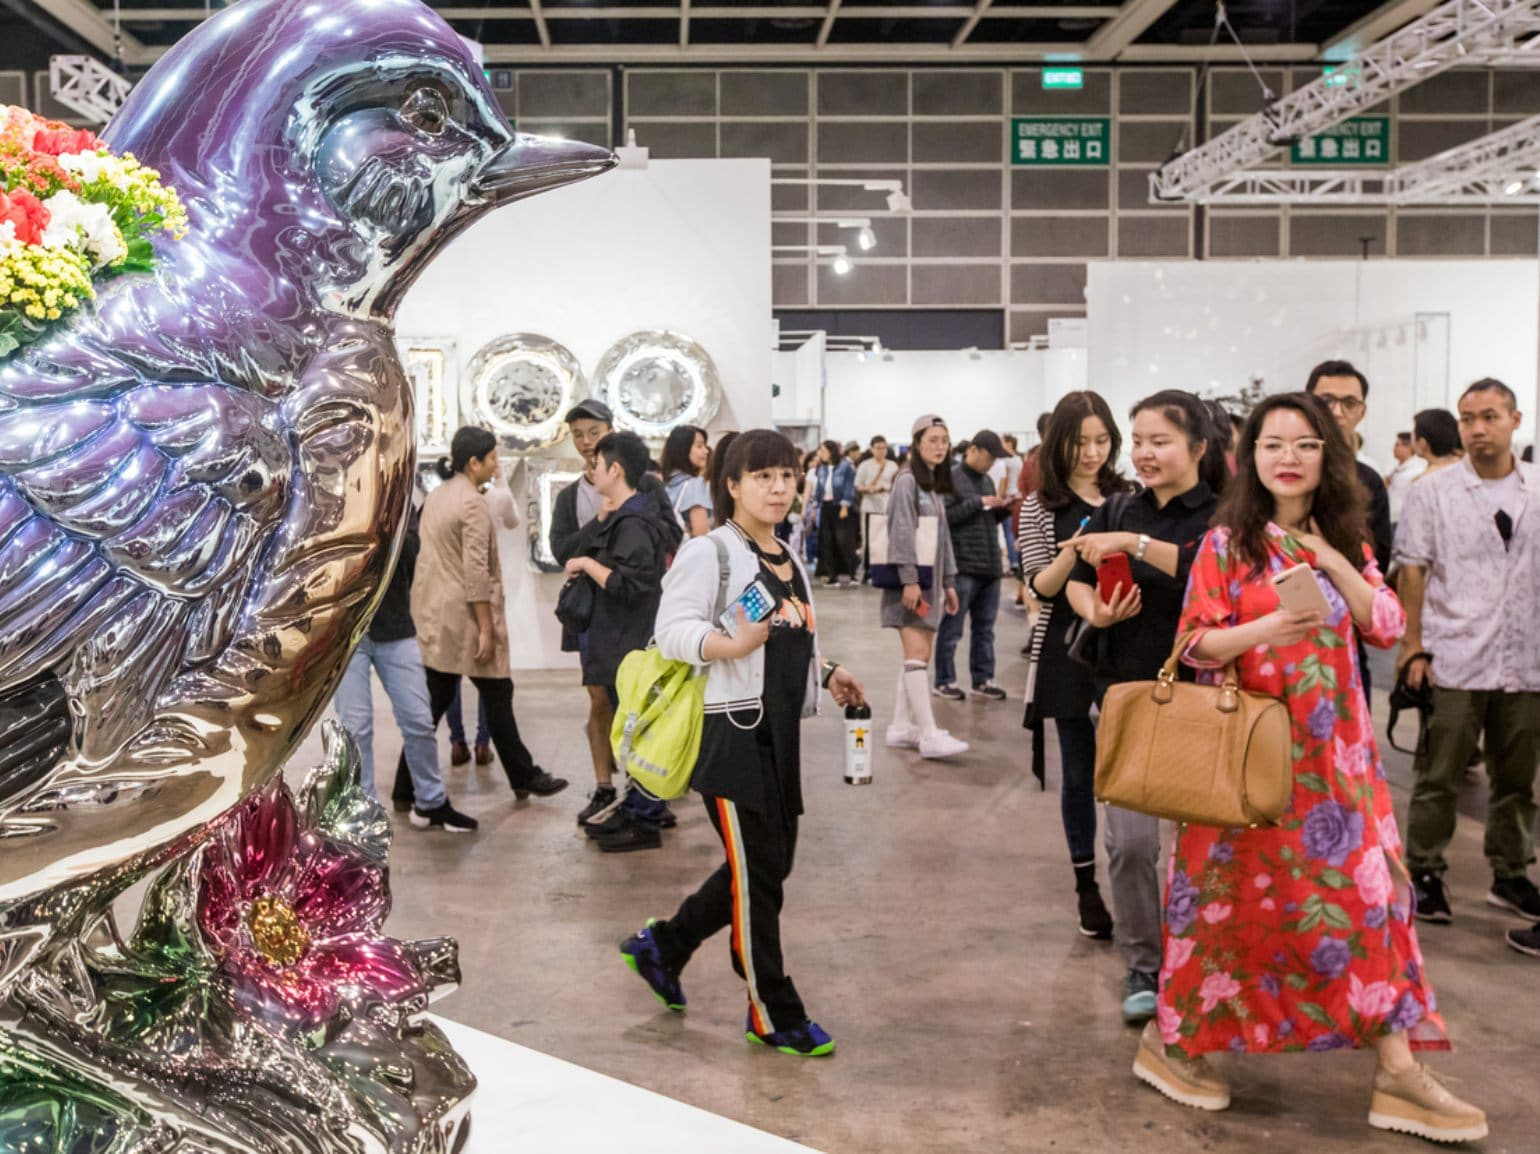 Things to do in Hong Kong - Art Basel Hong Kong